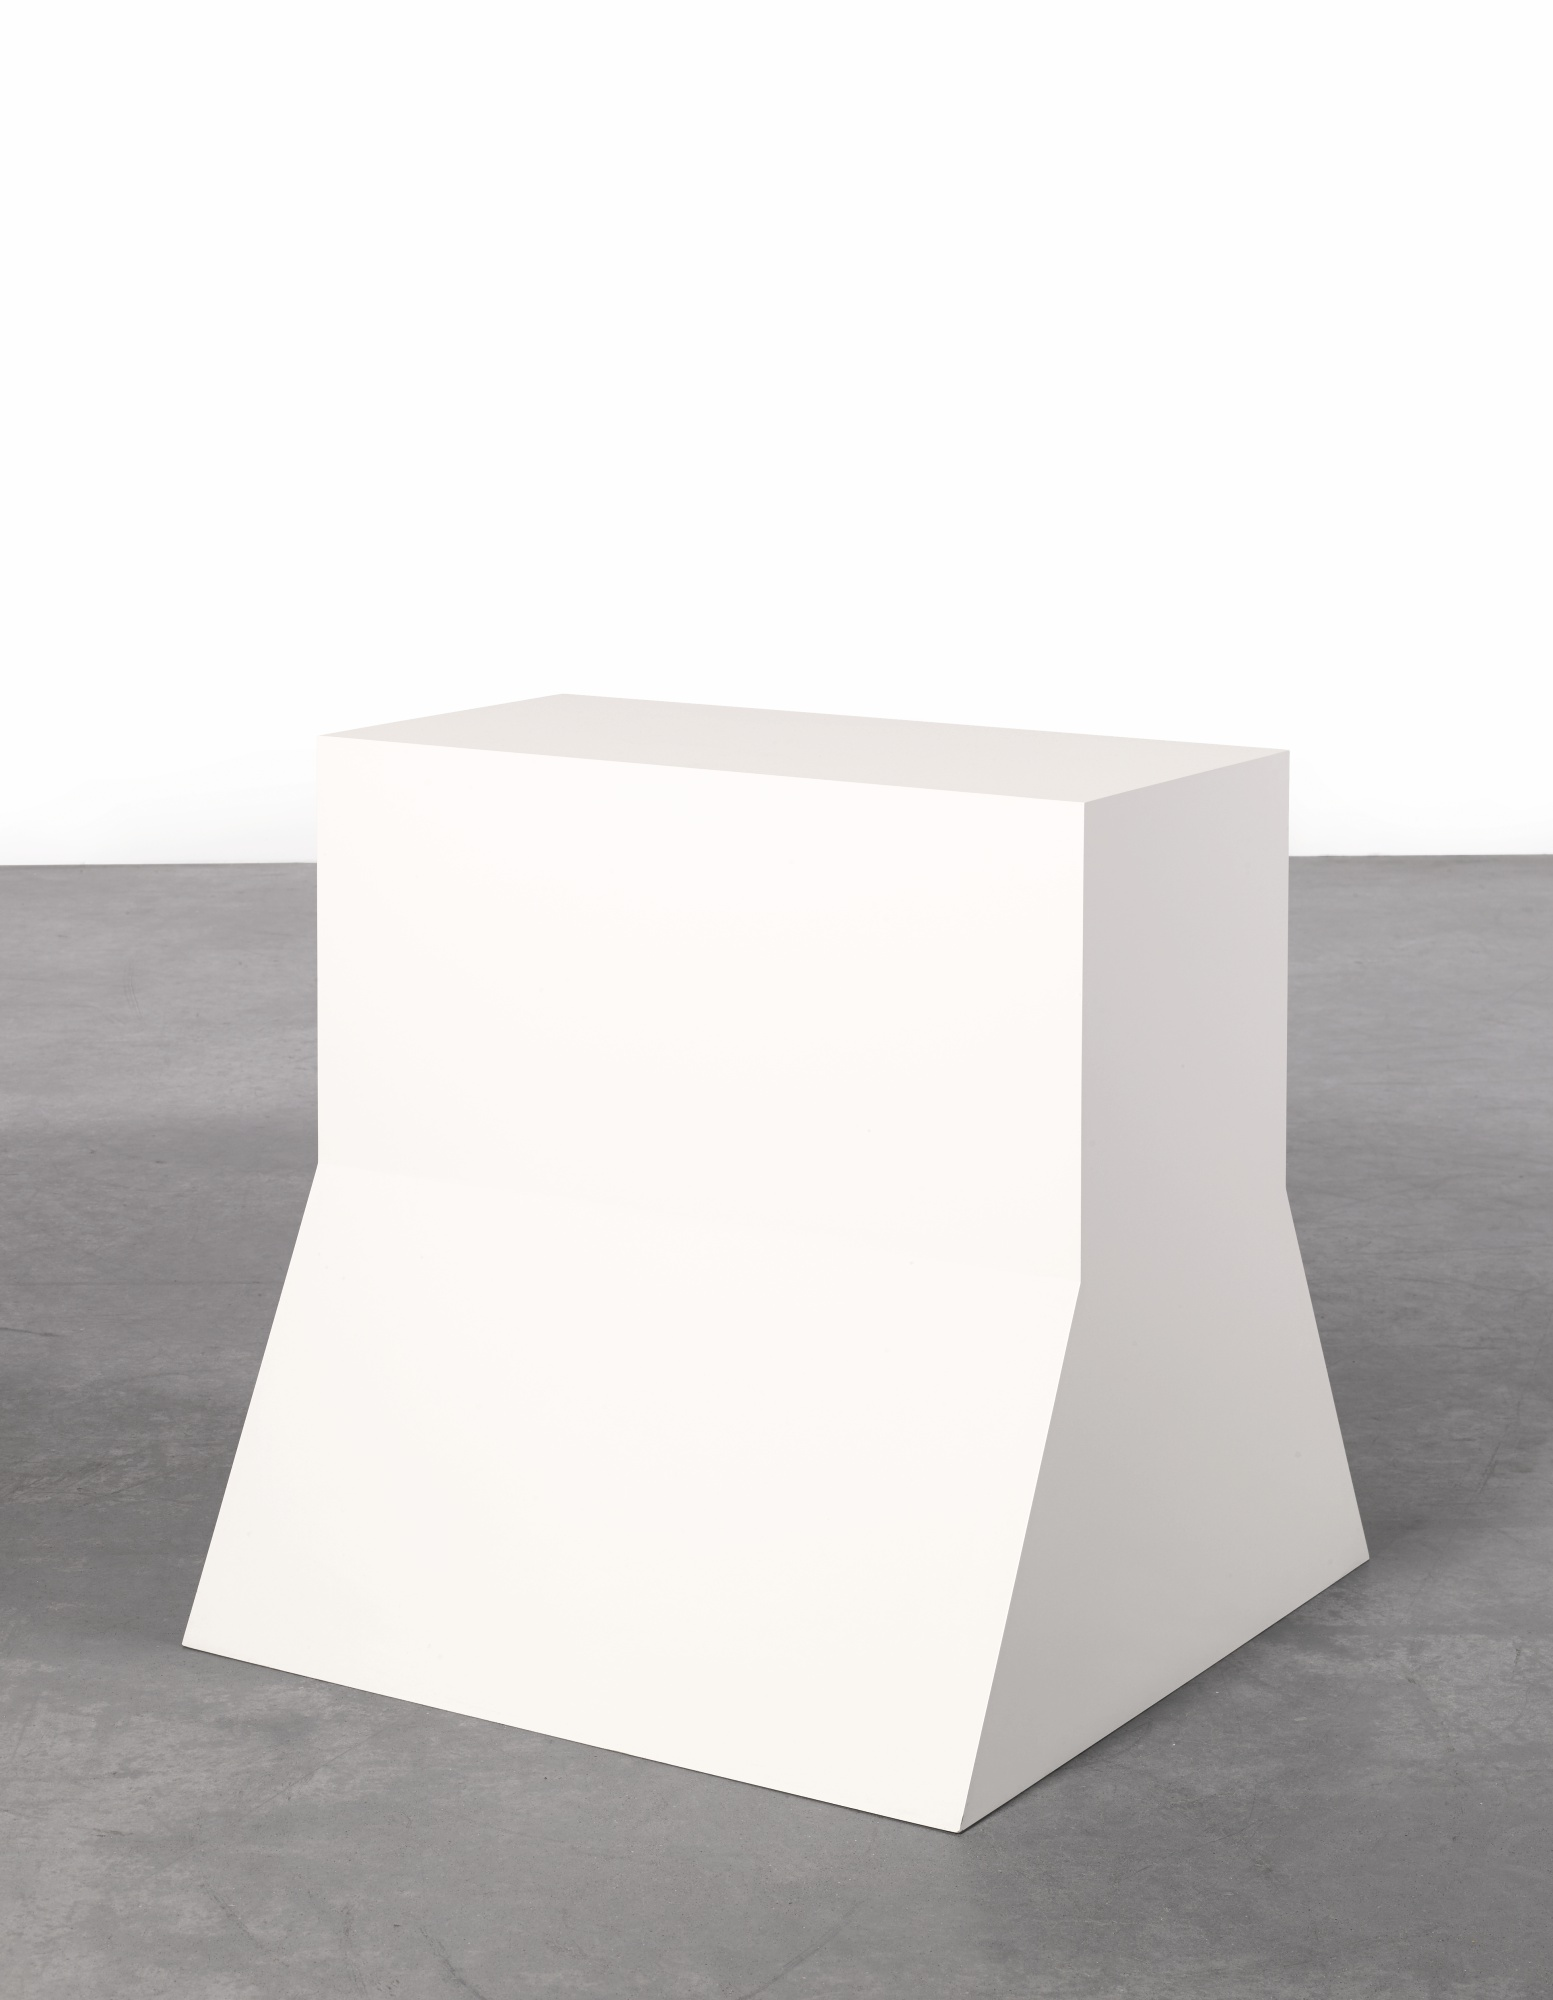 Sol LeWitt-Form Derived From A Cube #1-1988